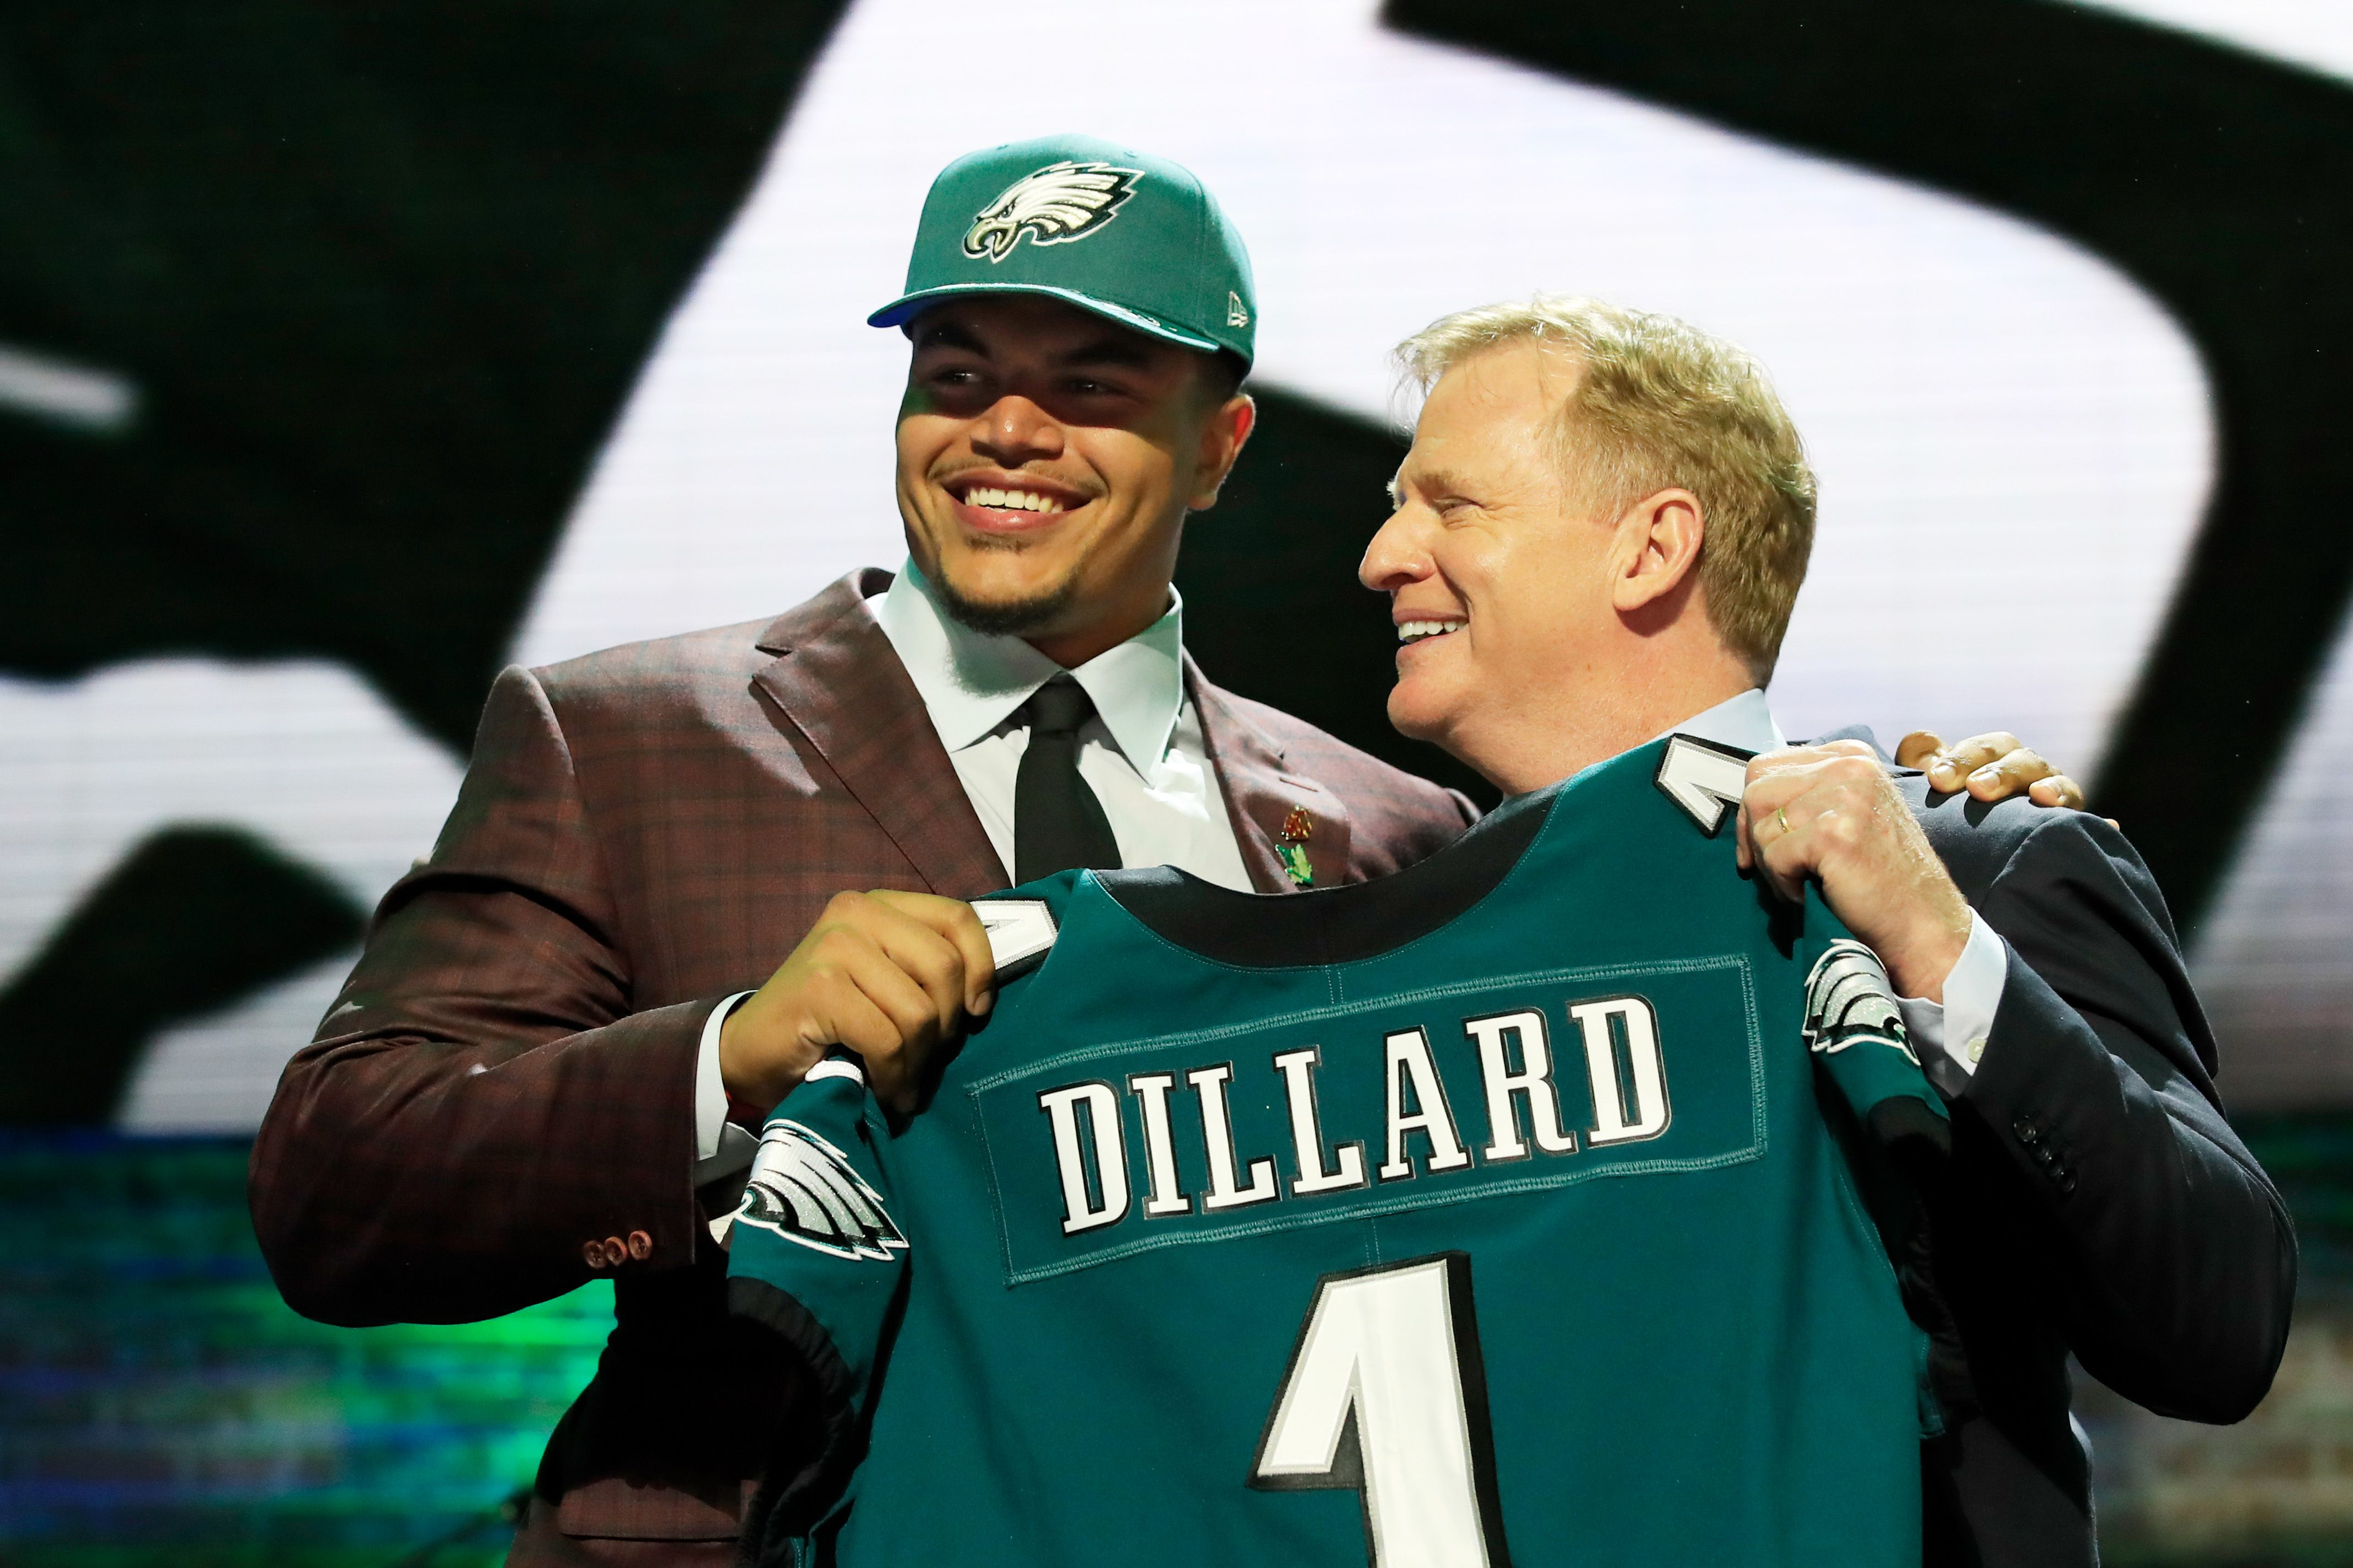 Andre Dillard holding his Eagles jersey